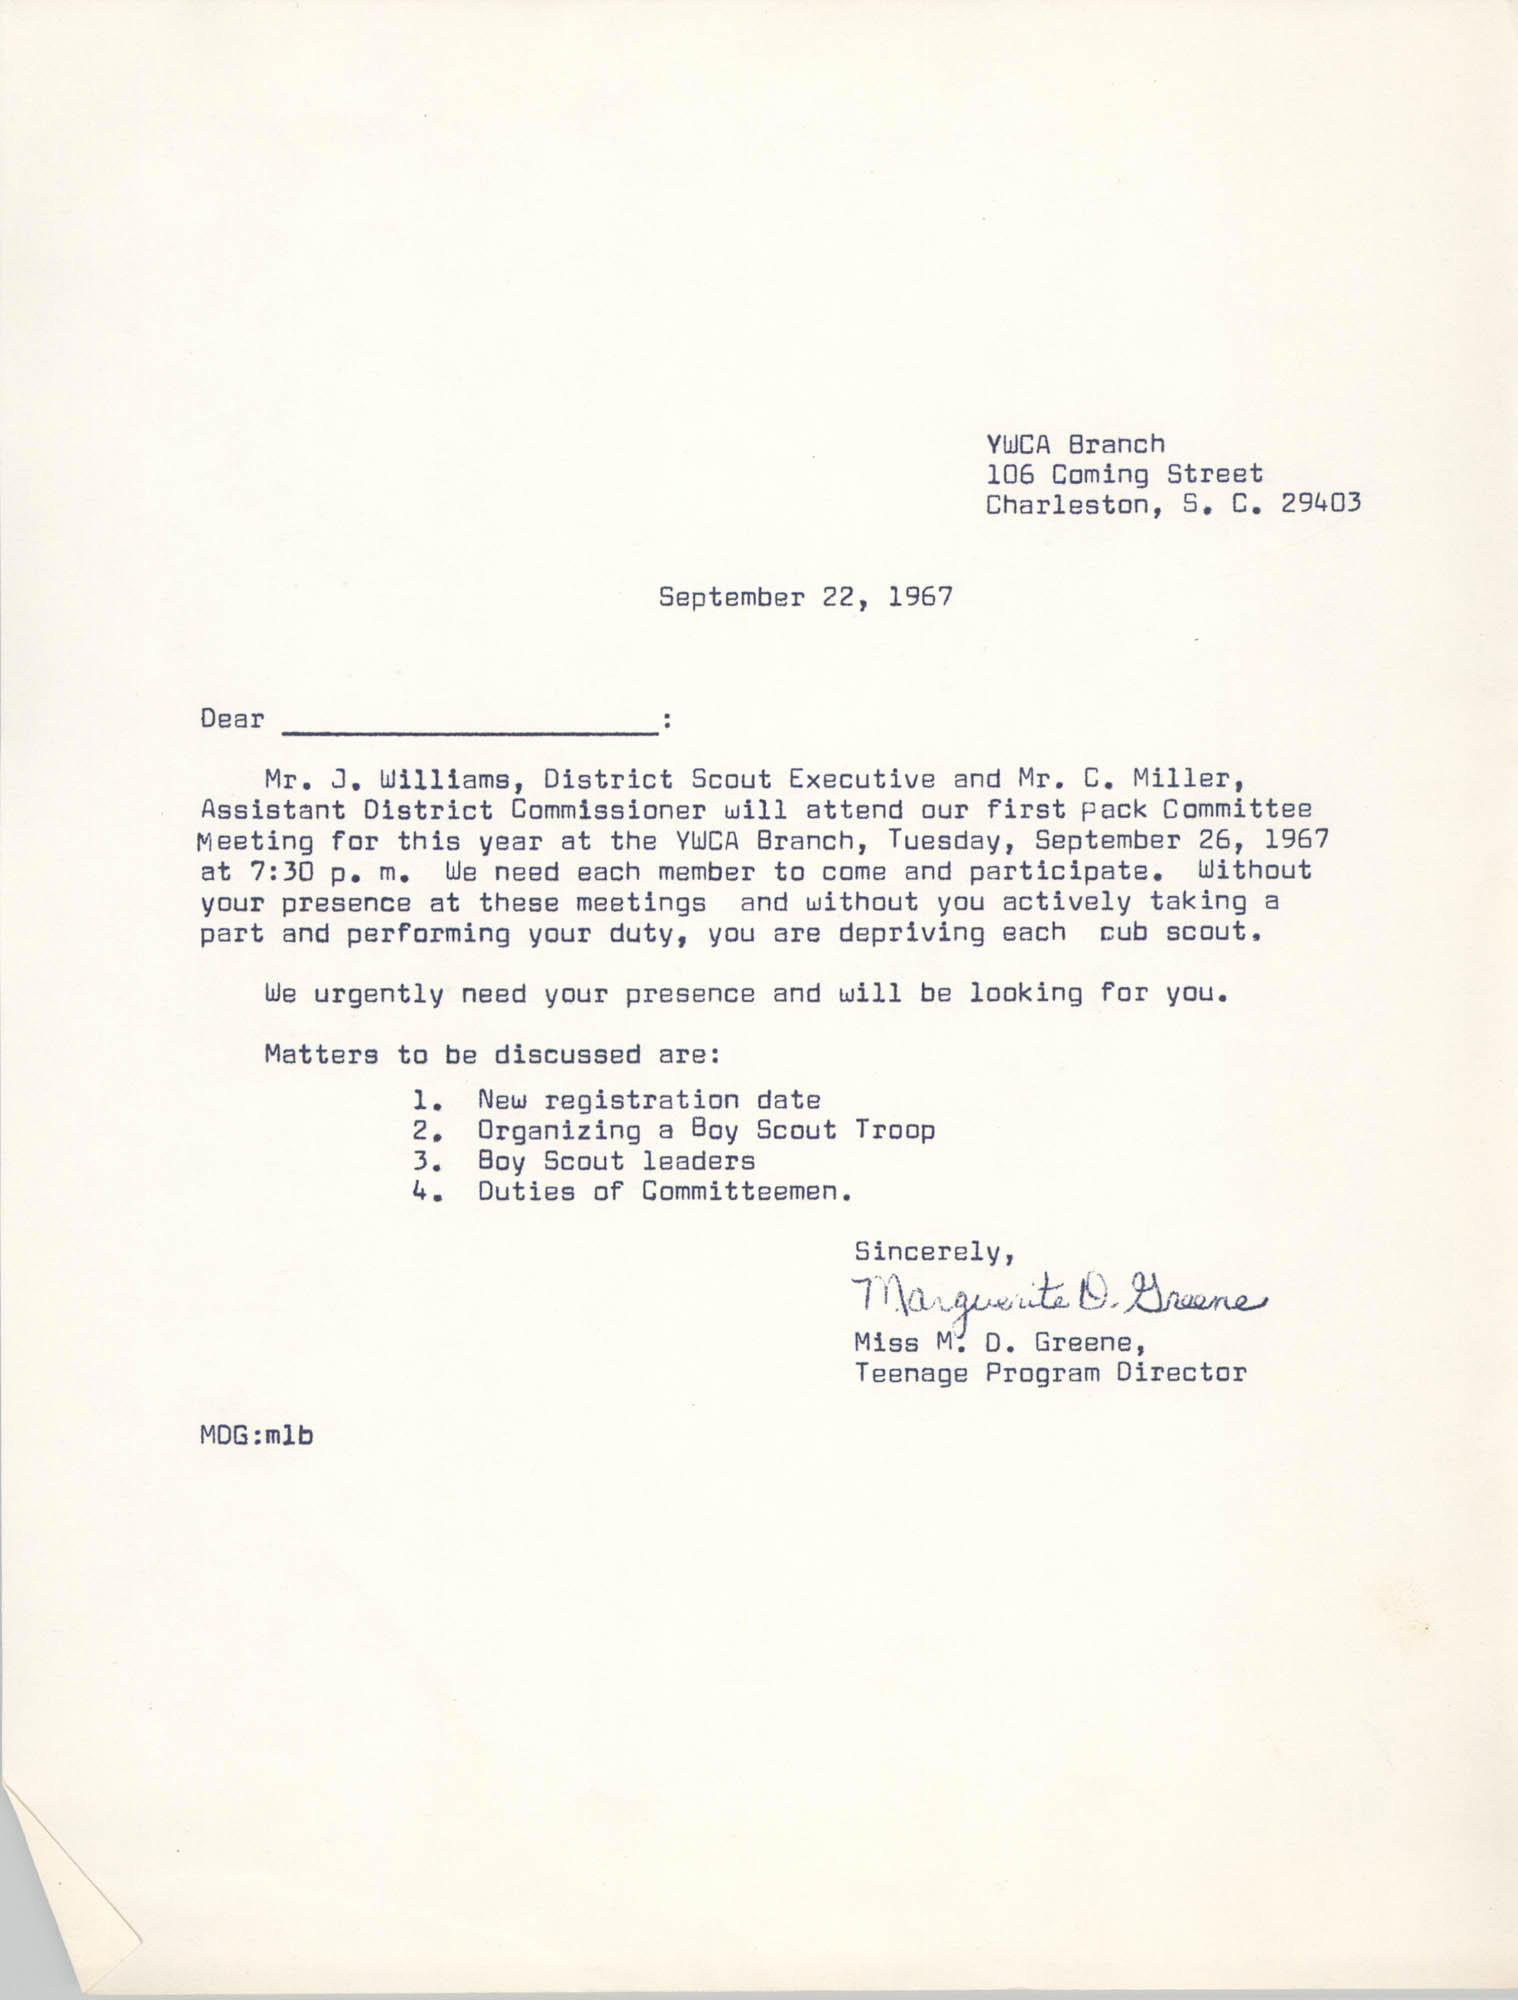 Letter from Marguerite D. Greene, September 22, 1967